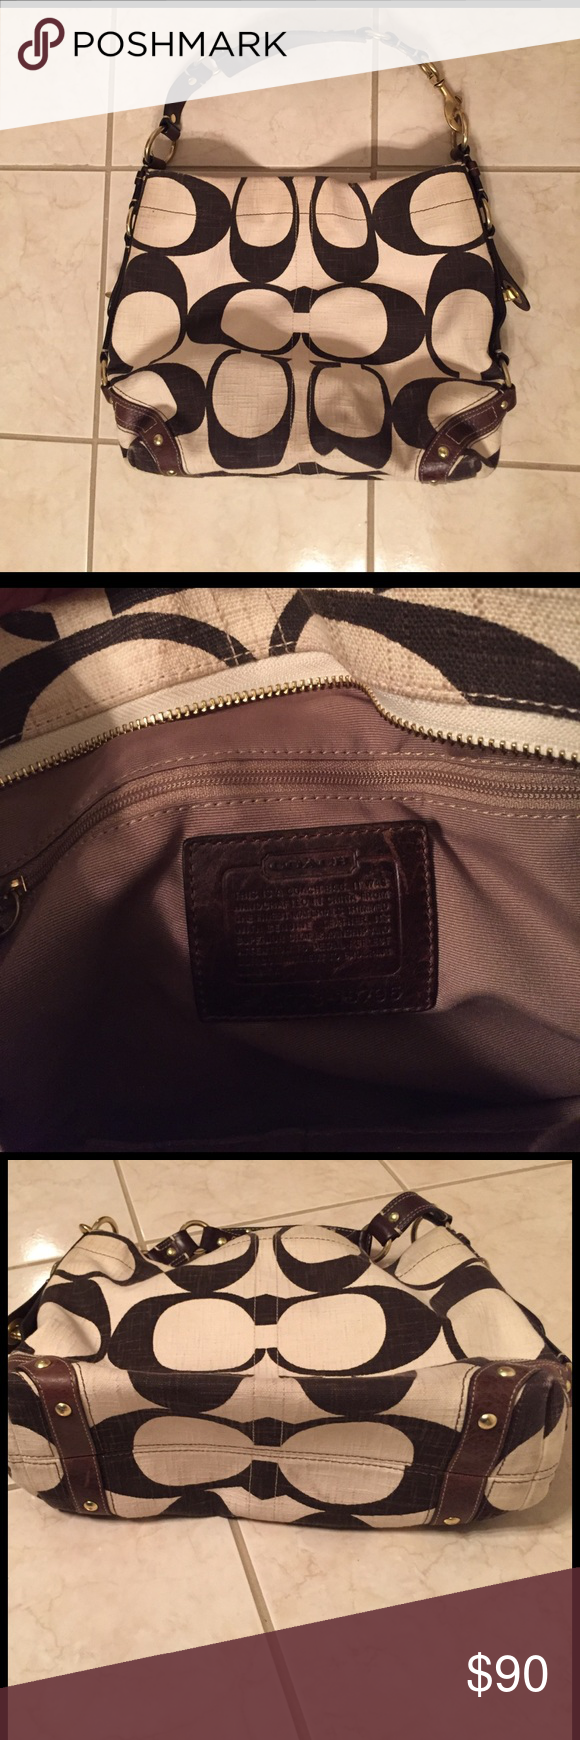 Coach purse Large cream and brown large Coach purse Coach Other